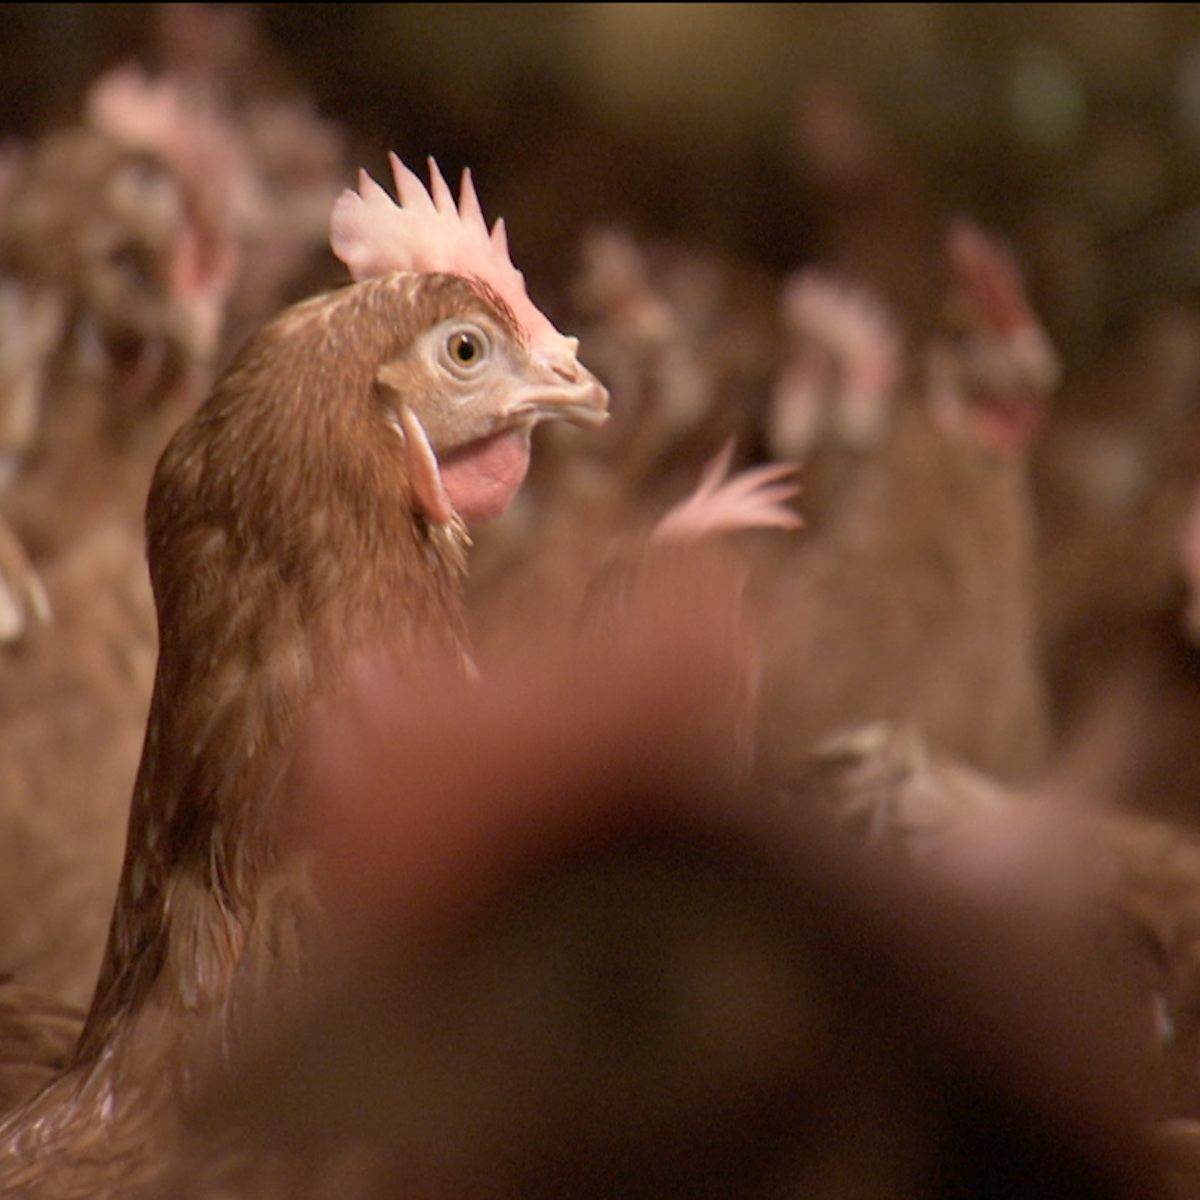 Cage-free sounds good, but does it mean a better life for